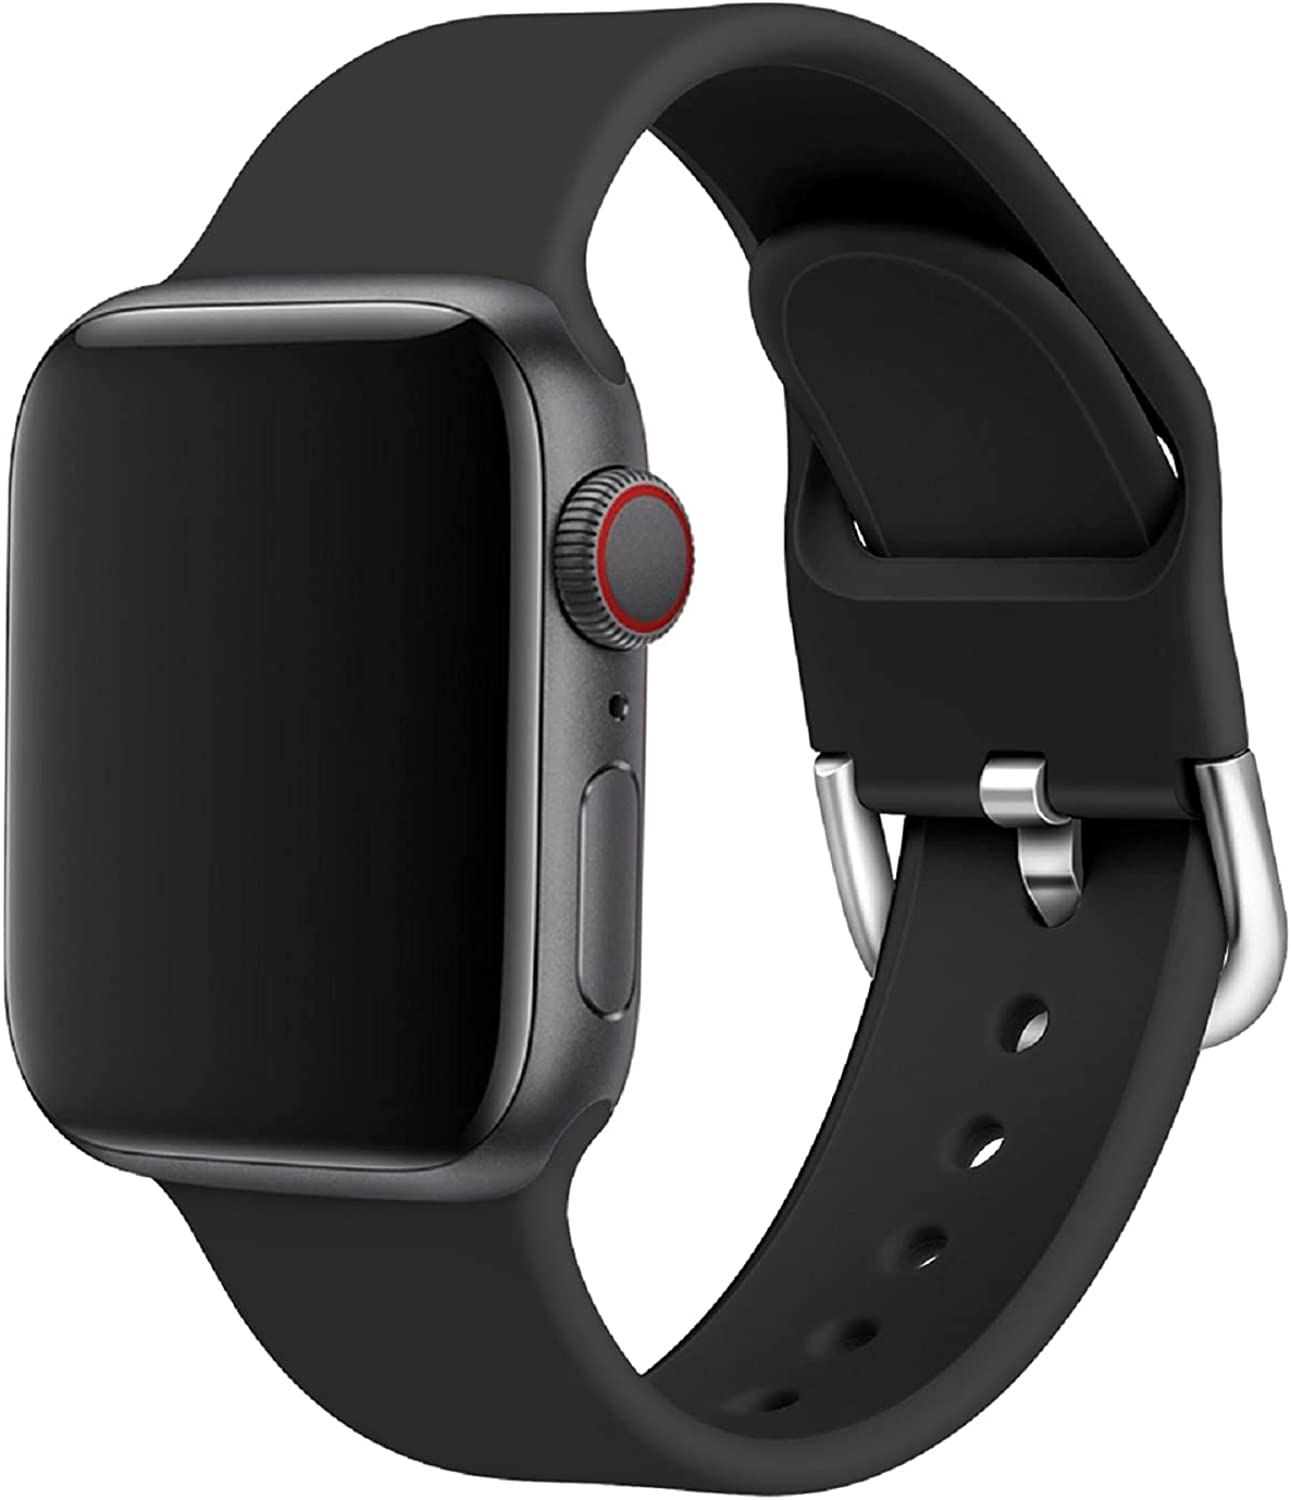 Compatible with Apple watch Bands 38mm 40mm 42mm 44mm, Soft Silicone Sport Loop Bands Compatible with iwatch Series 6/5/4/3/2/1/SE, Sports Edition for Both Men & Women